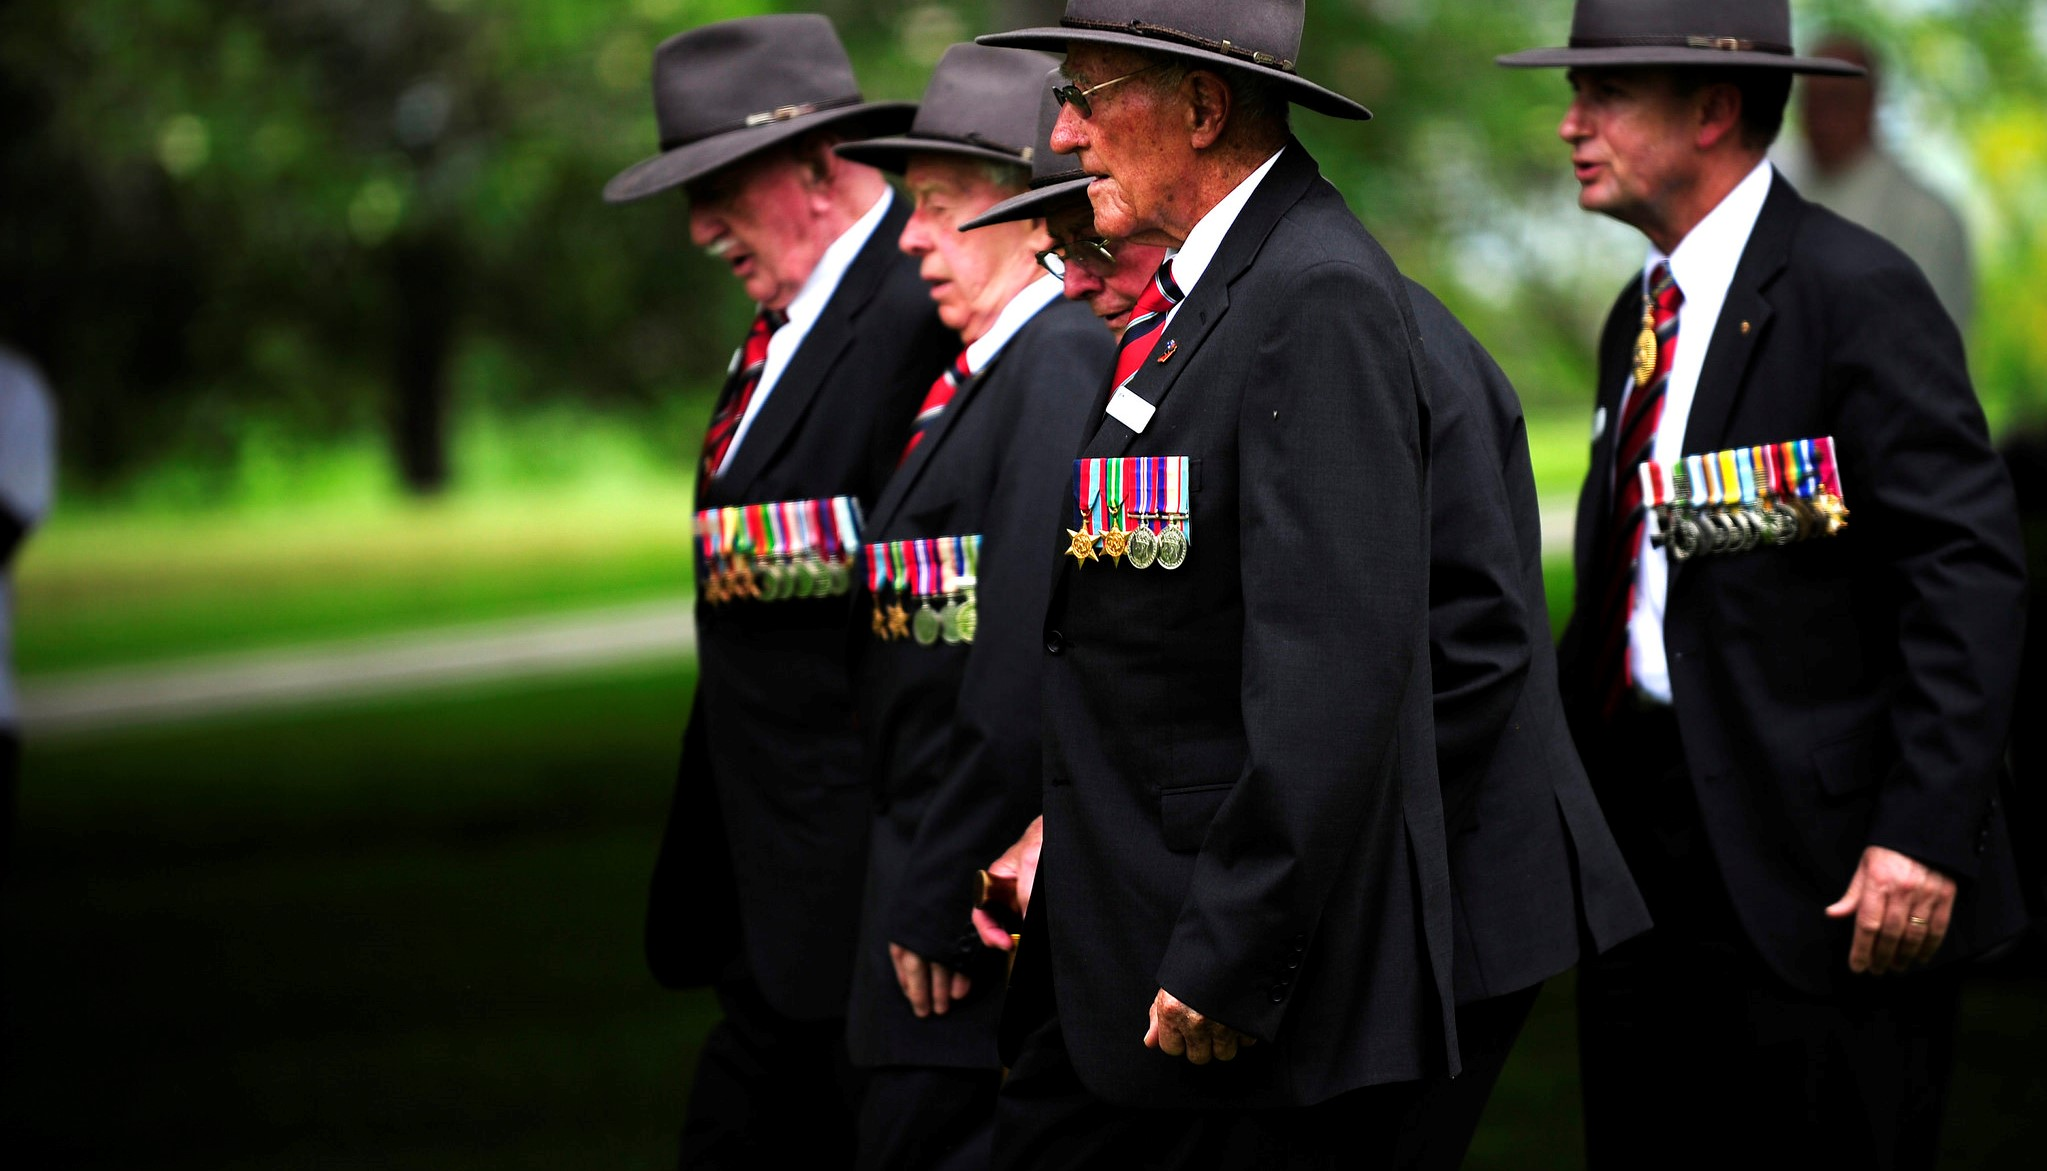 Veterans commemorate the 70th anniversary of the Kokoda campaign at the Port Moresby (Bomana) War Cemetery in 2012.